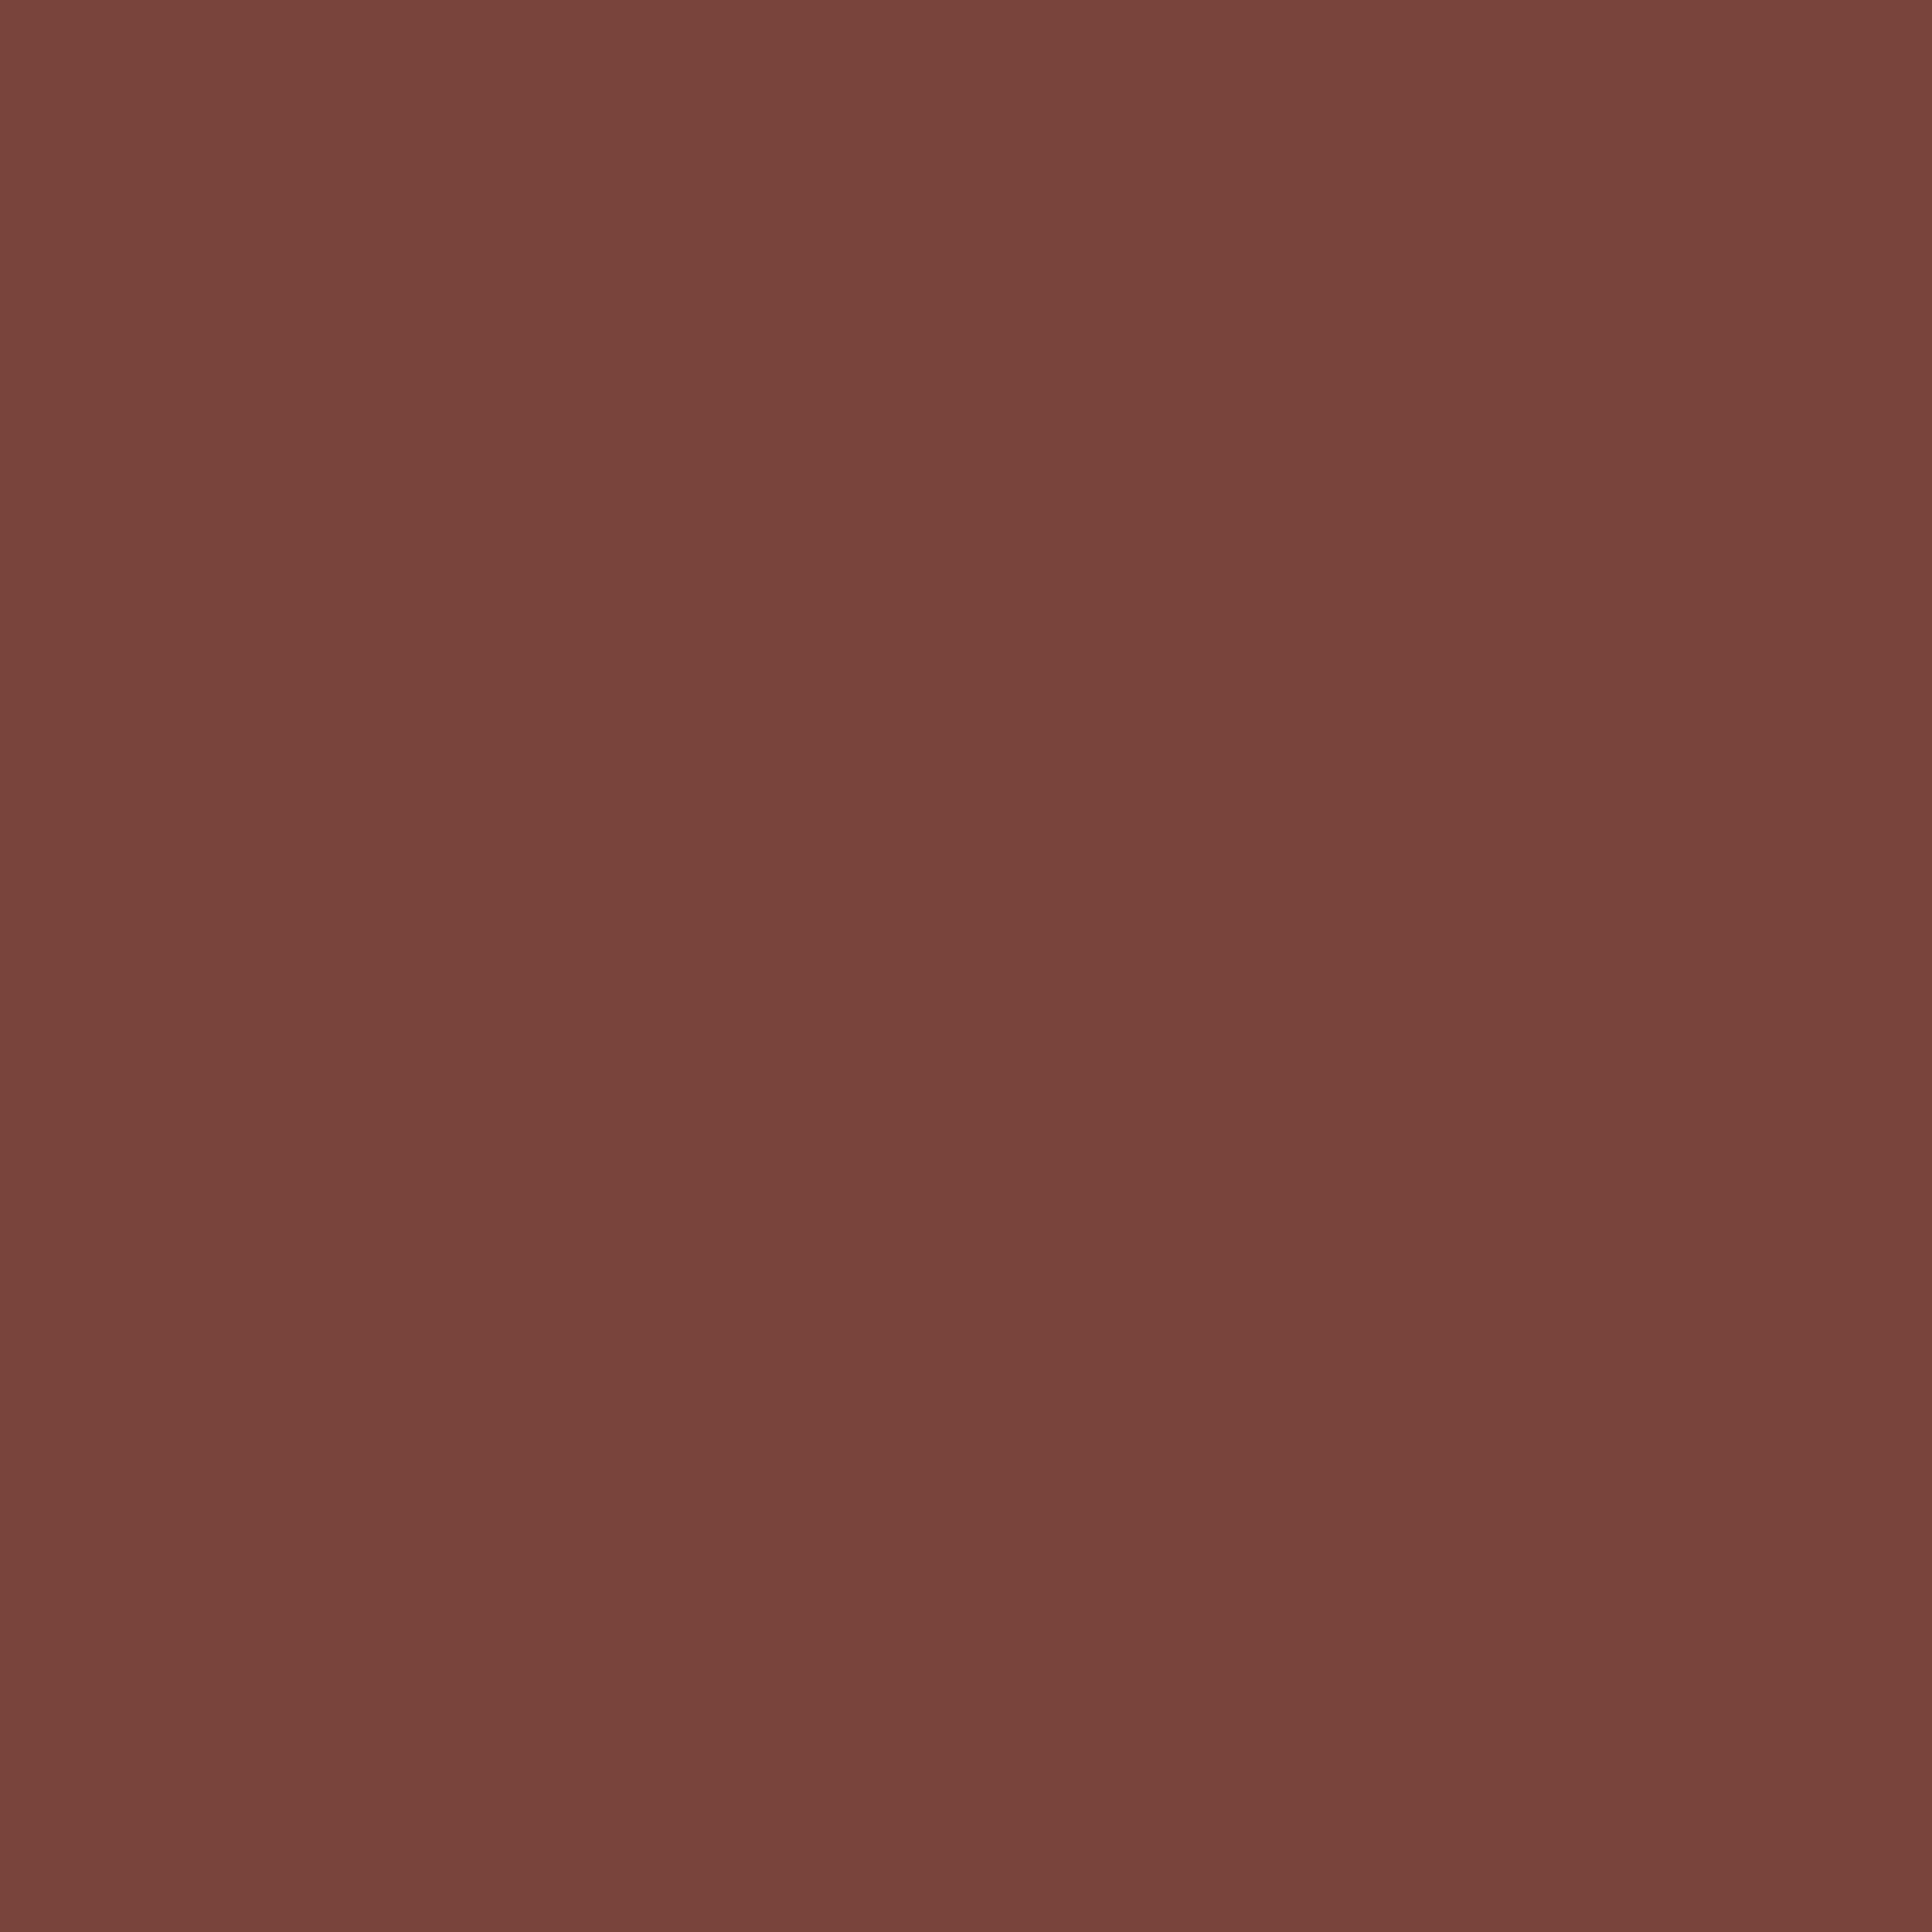 2048x2048 Medium Tuscan Red Solid Color Background